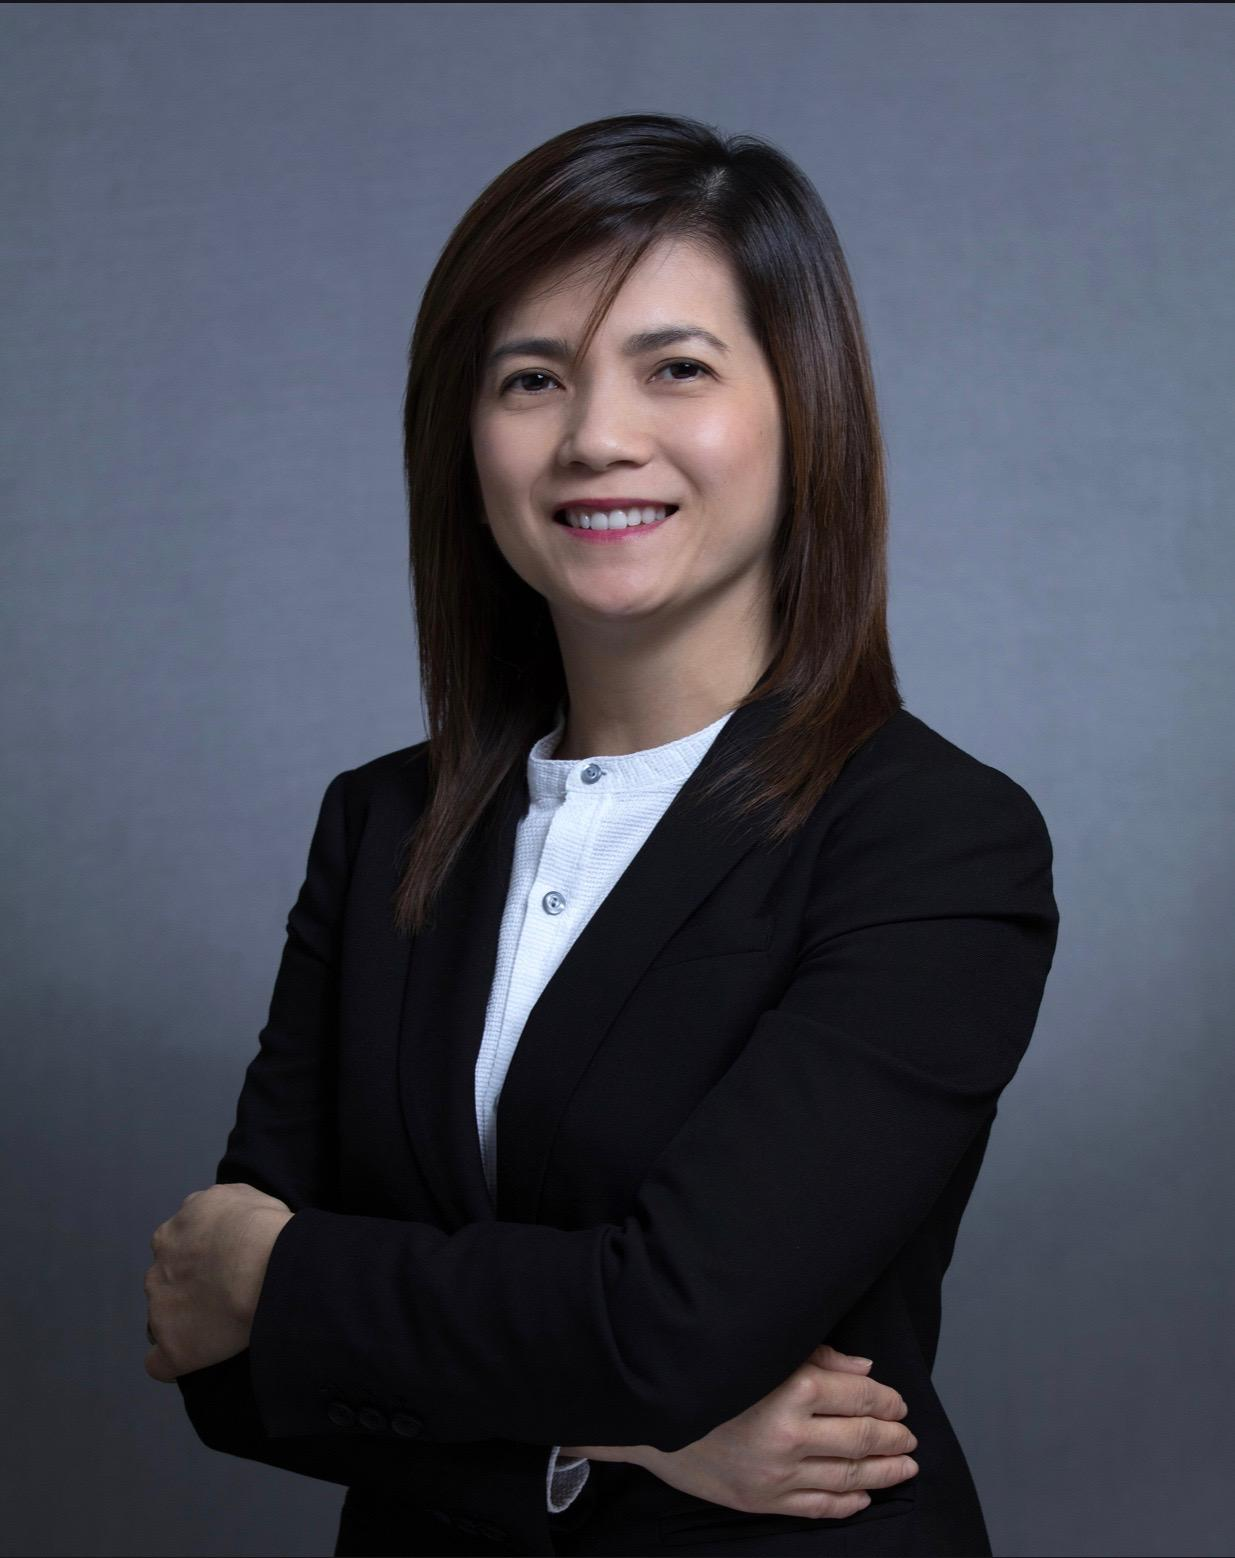 ANGIE N. HOANG  Your Financial Professional & Insurance Agent